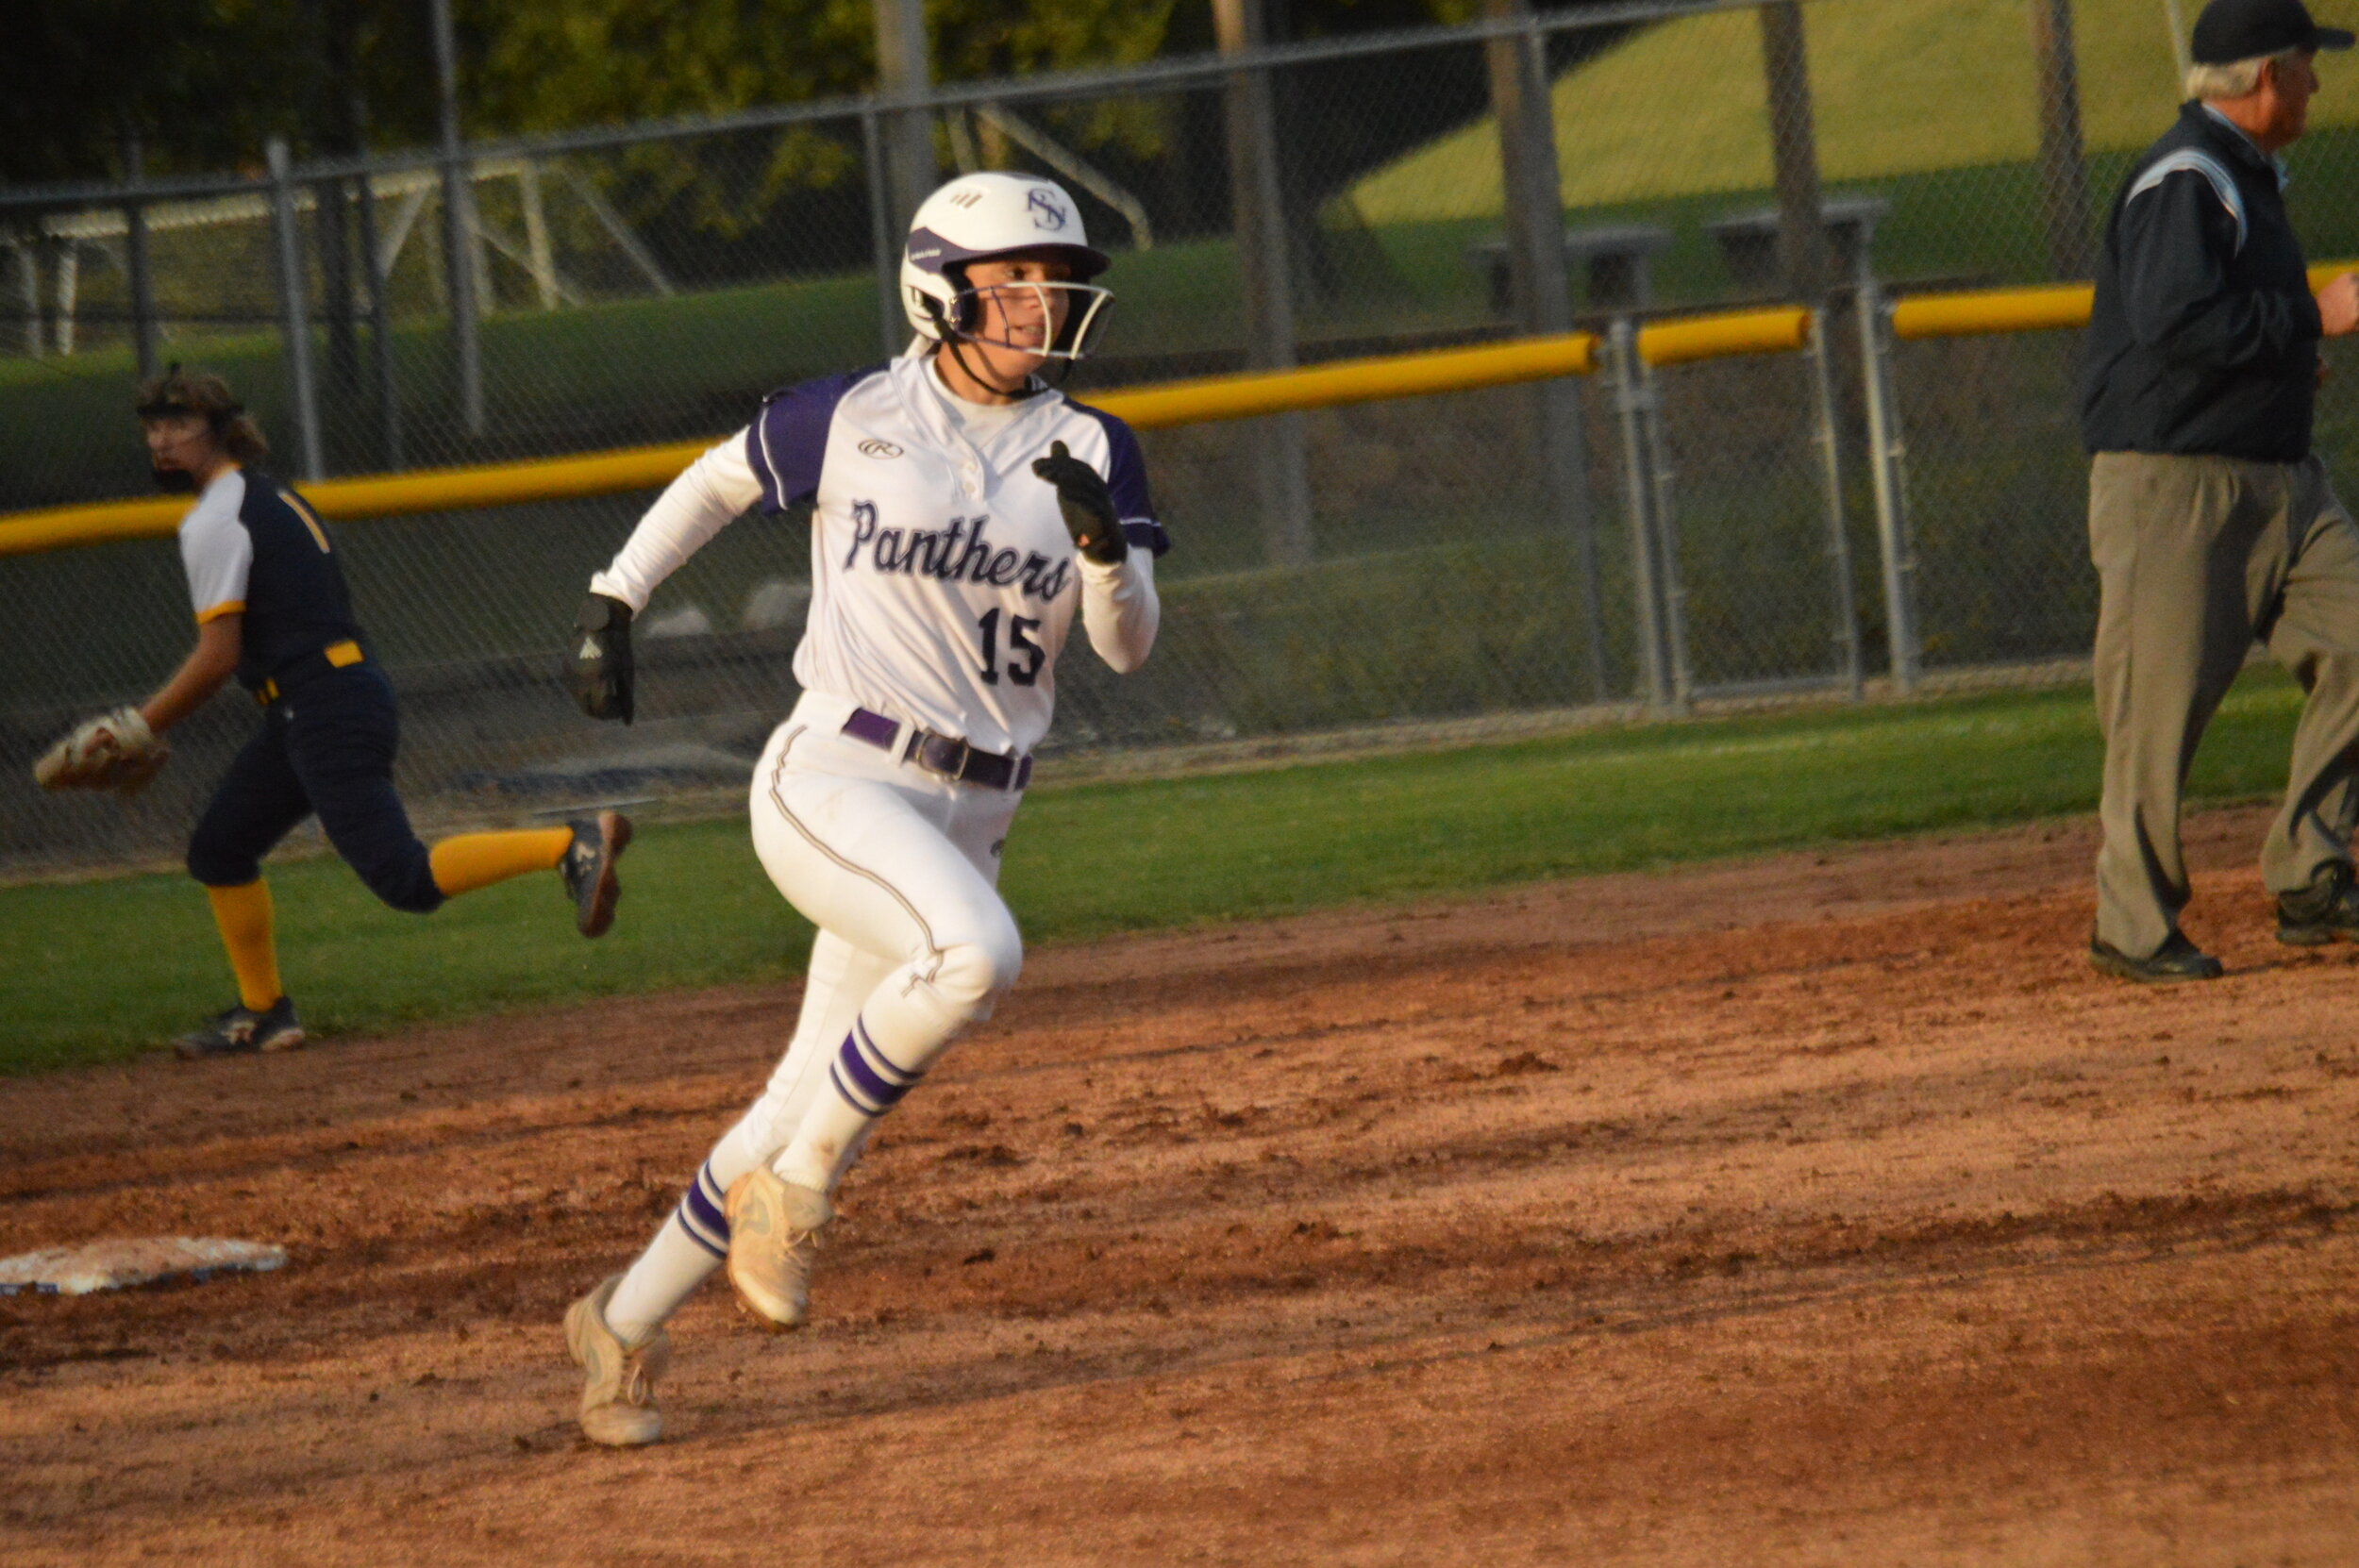 WILL WRIGHT/Park Hill South High School  Park Hill South's Hadley Uribe runs the bases during the a game against Liberty North on Thursday, Oct. 3 at Park Hill South in Riverside. Liberty North won 9-4.